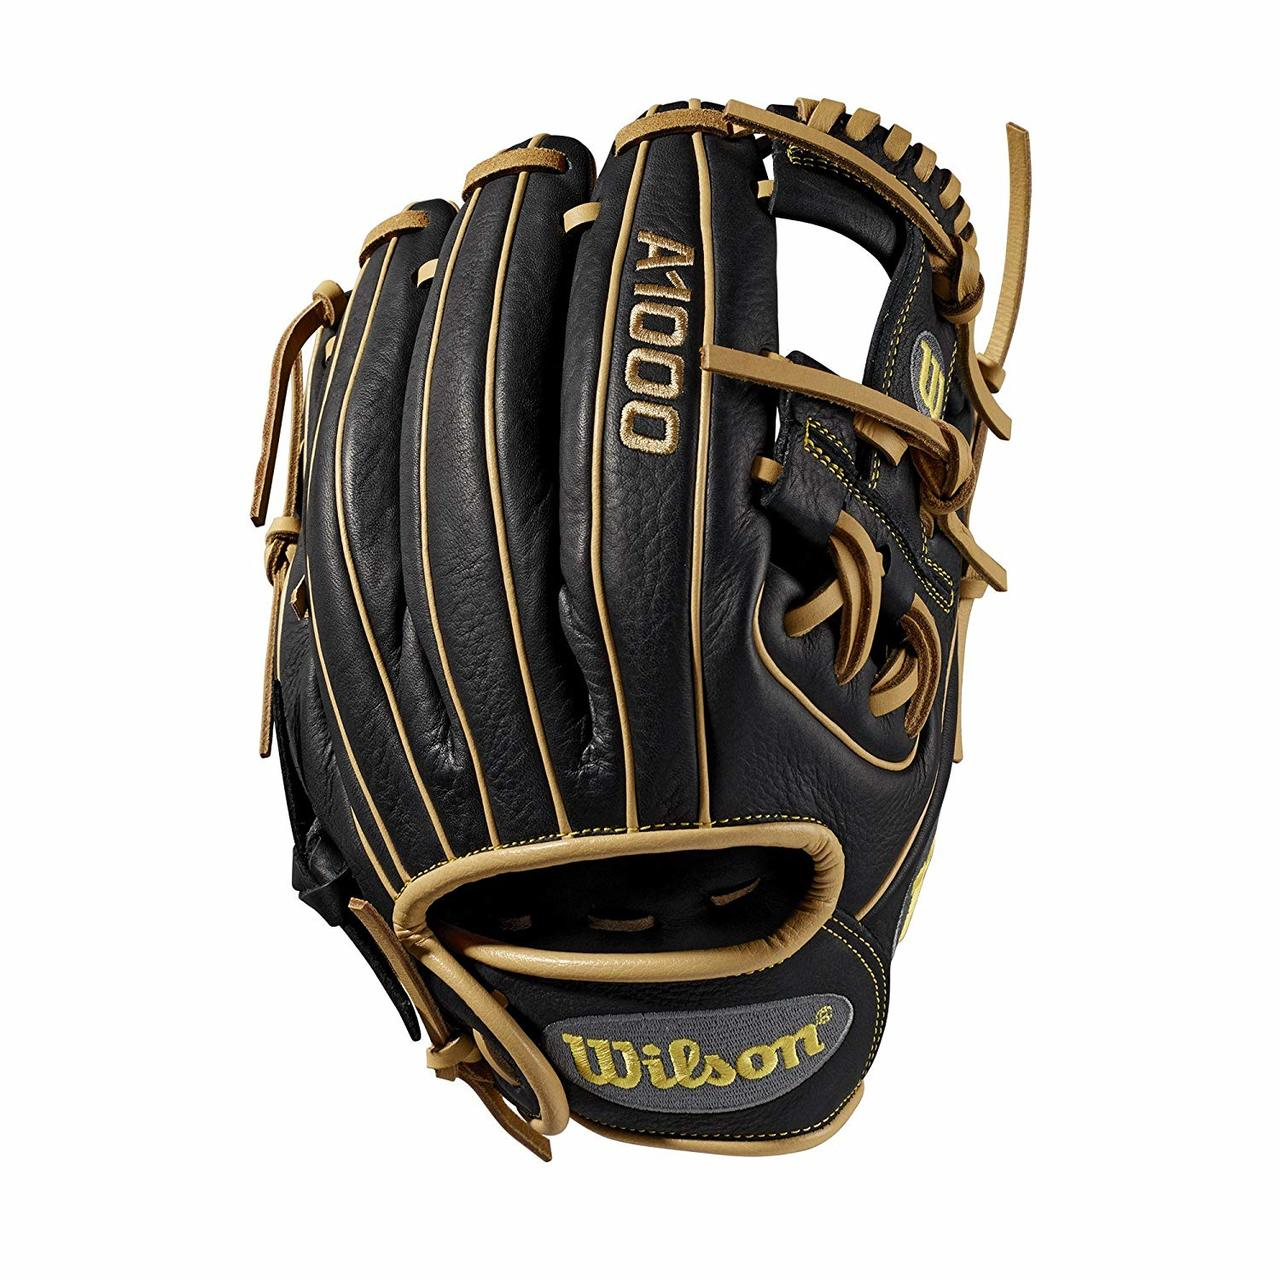 wilson-a1000-baseball-glove-dp15-11-5-right-hand-throw WTA10RB19DP15-RightHandThrow Wilson 887768710873 11.5 inch Baseball glove Made with pedroia fit for players with